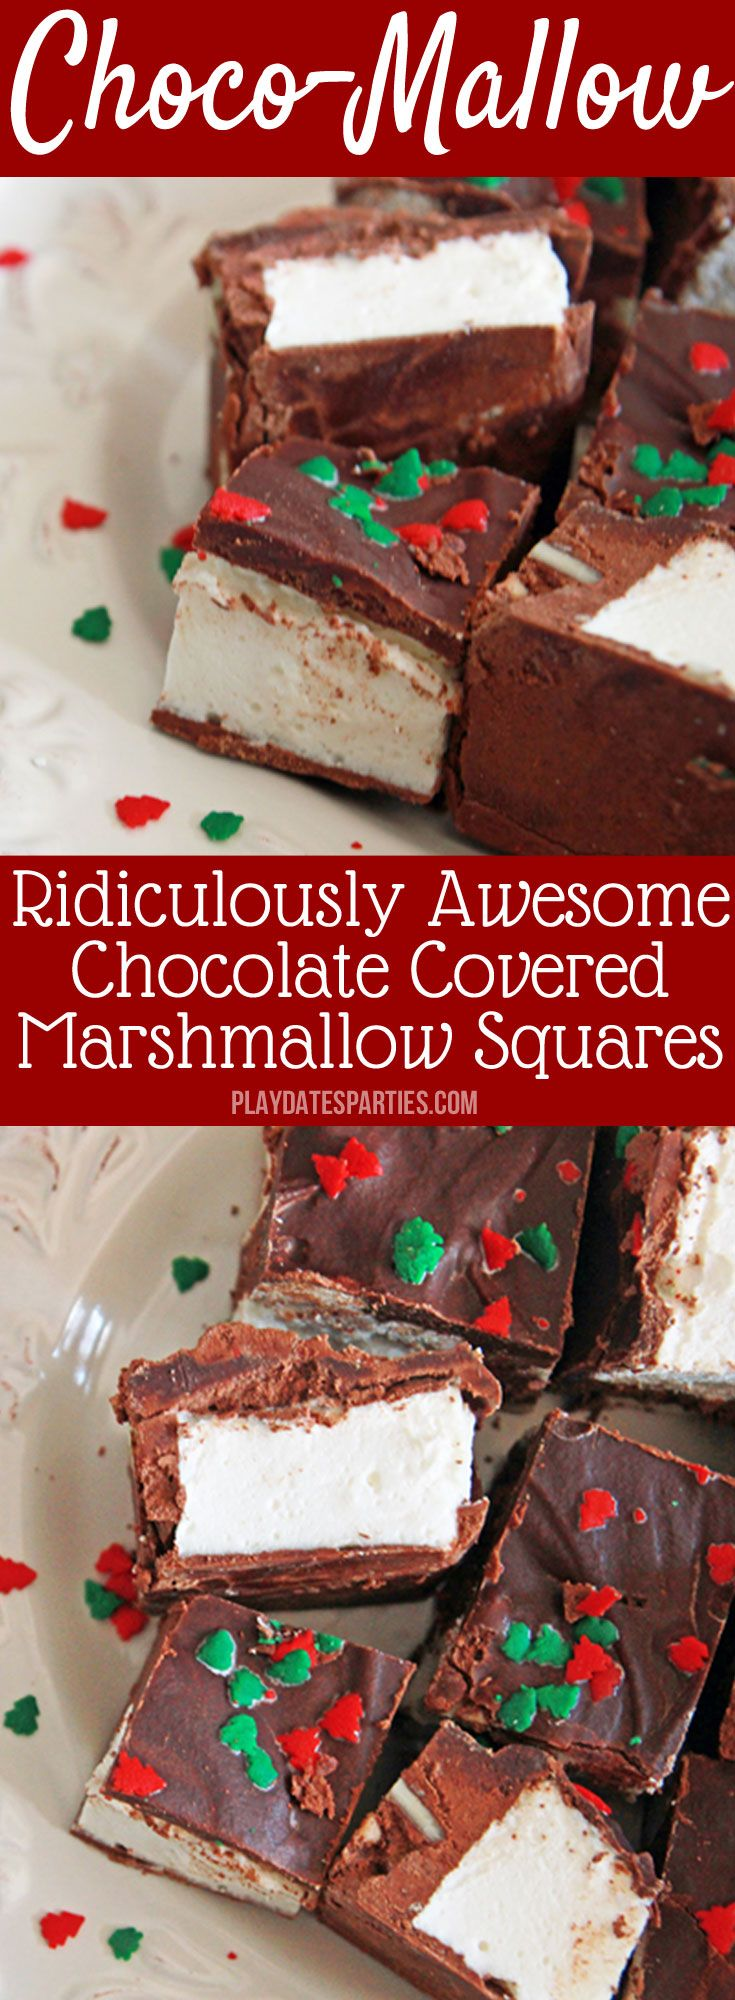 Christmas Desserts Pinterest.Choco Mallow Candy